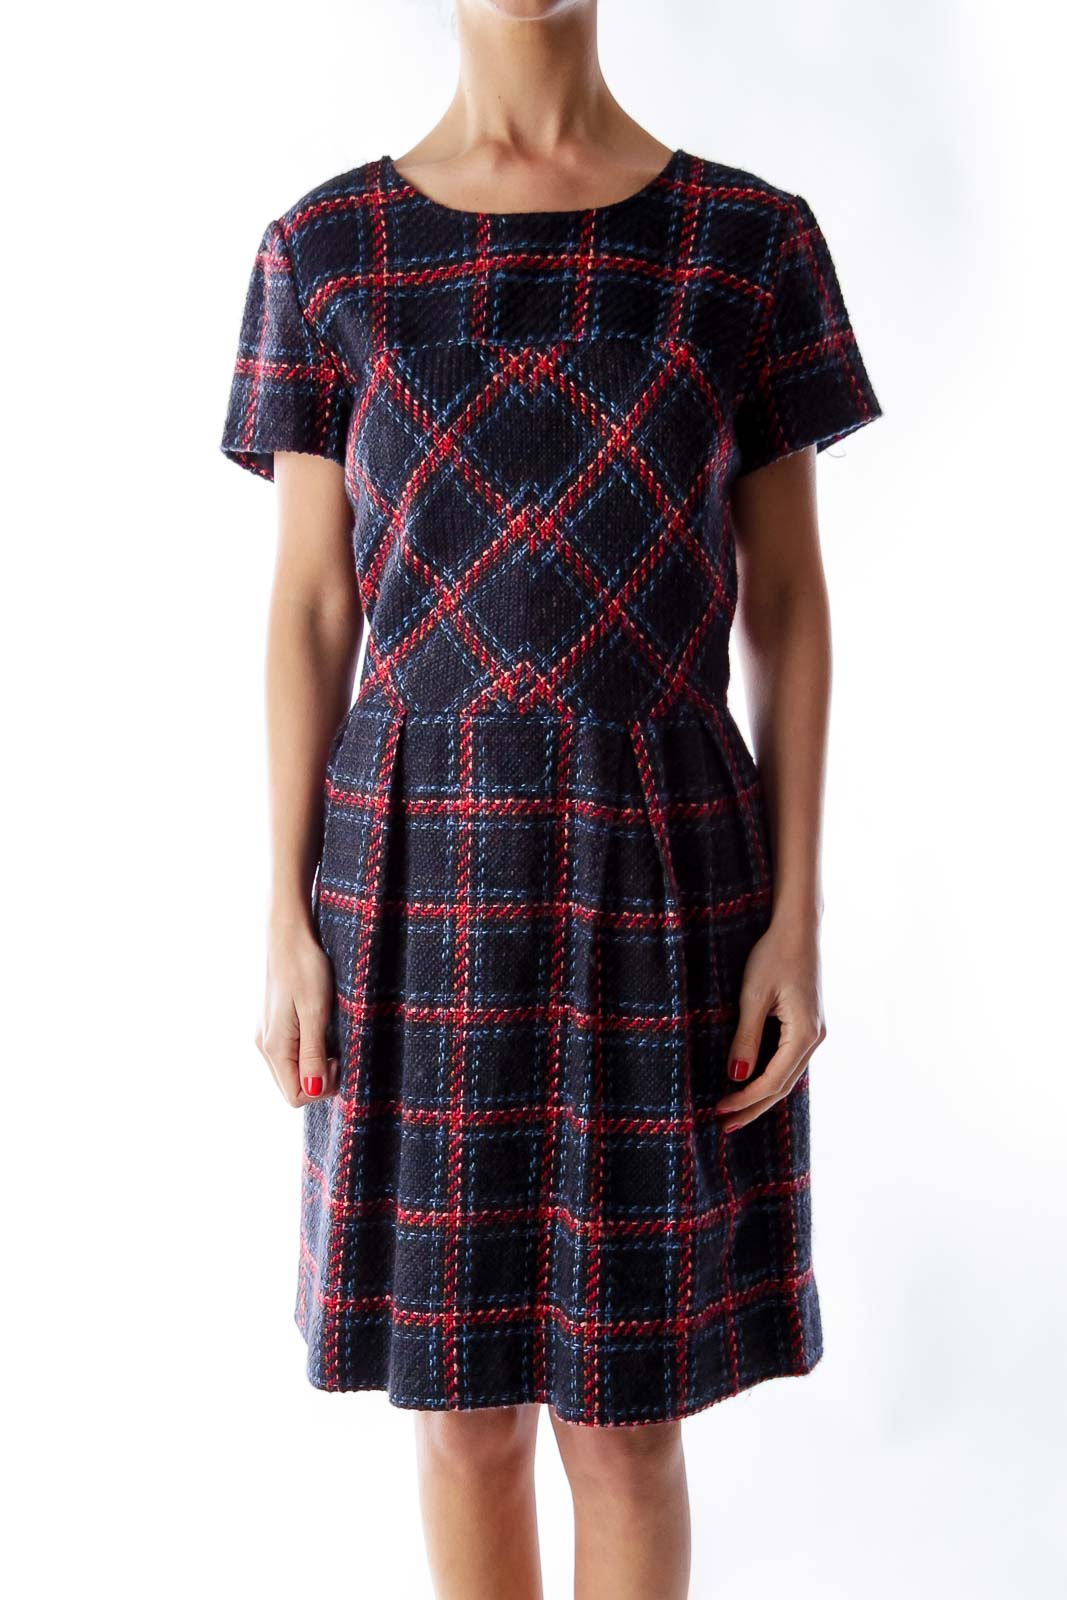 Shop the latest womens plaid dress styles at Forever Explore the newest trends and essentials designed for any and every occasion!